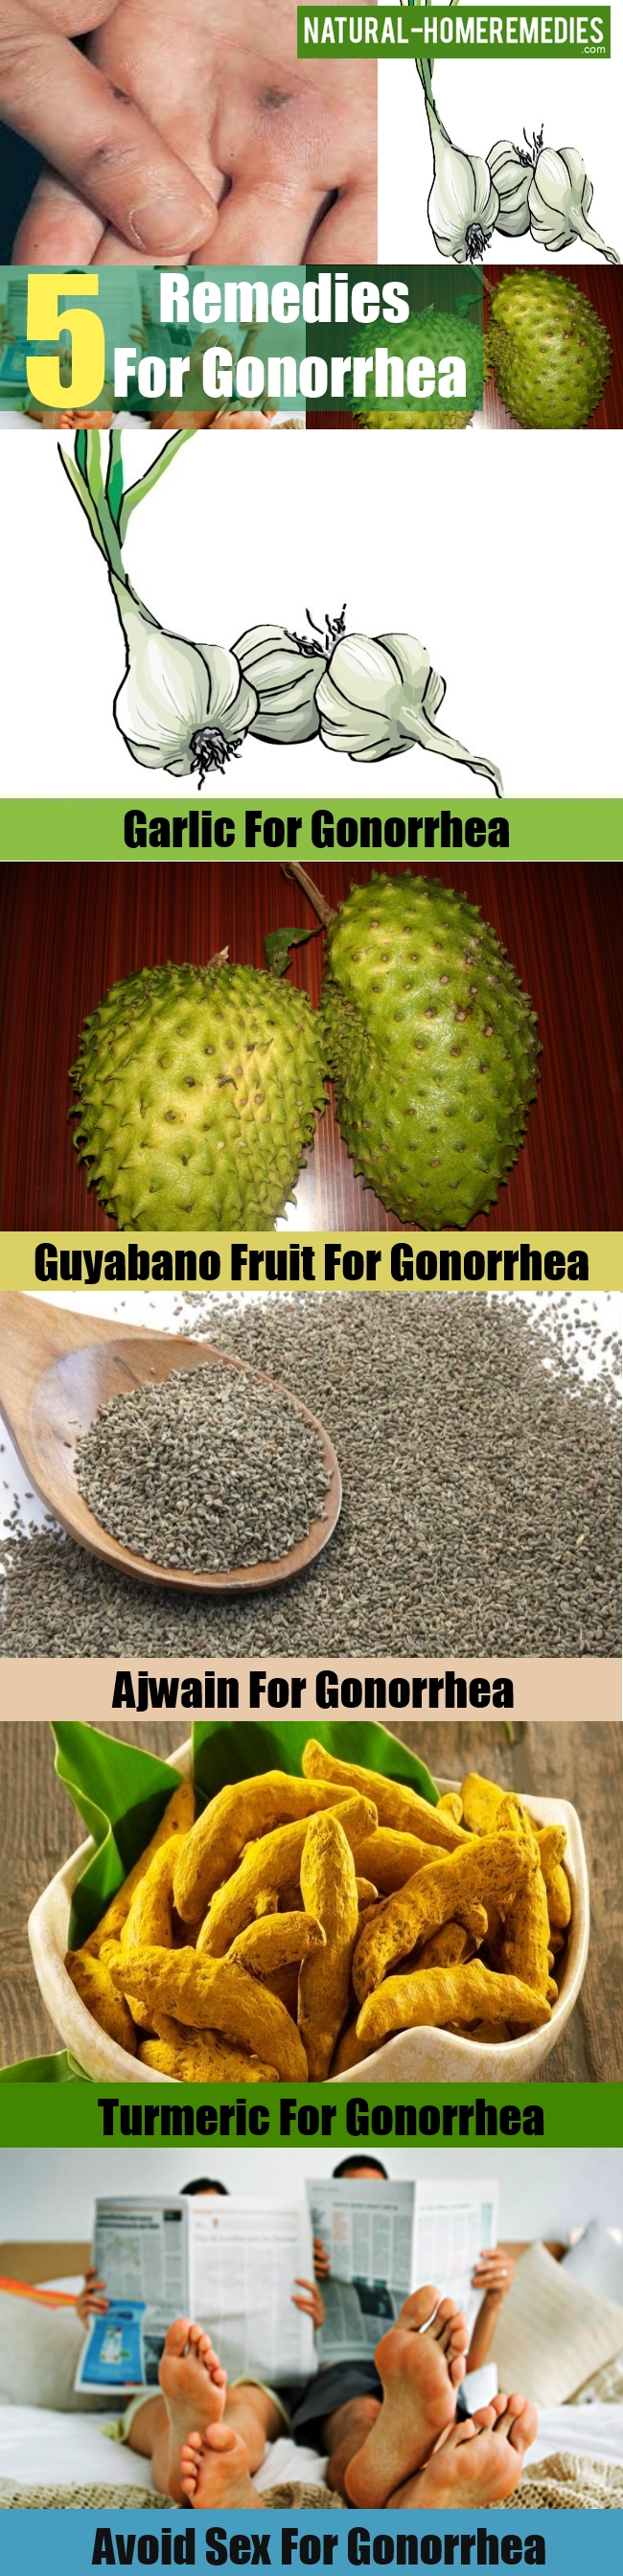 Remedies For Gonorrhea